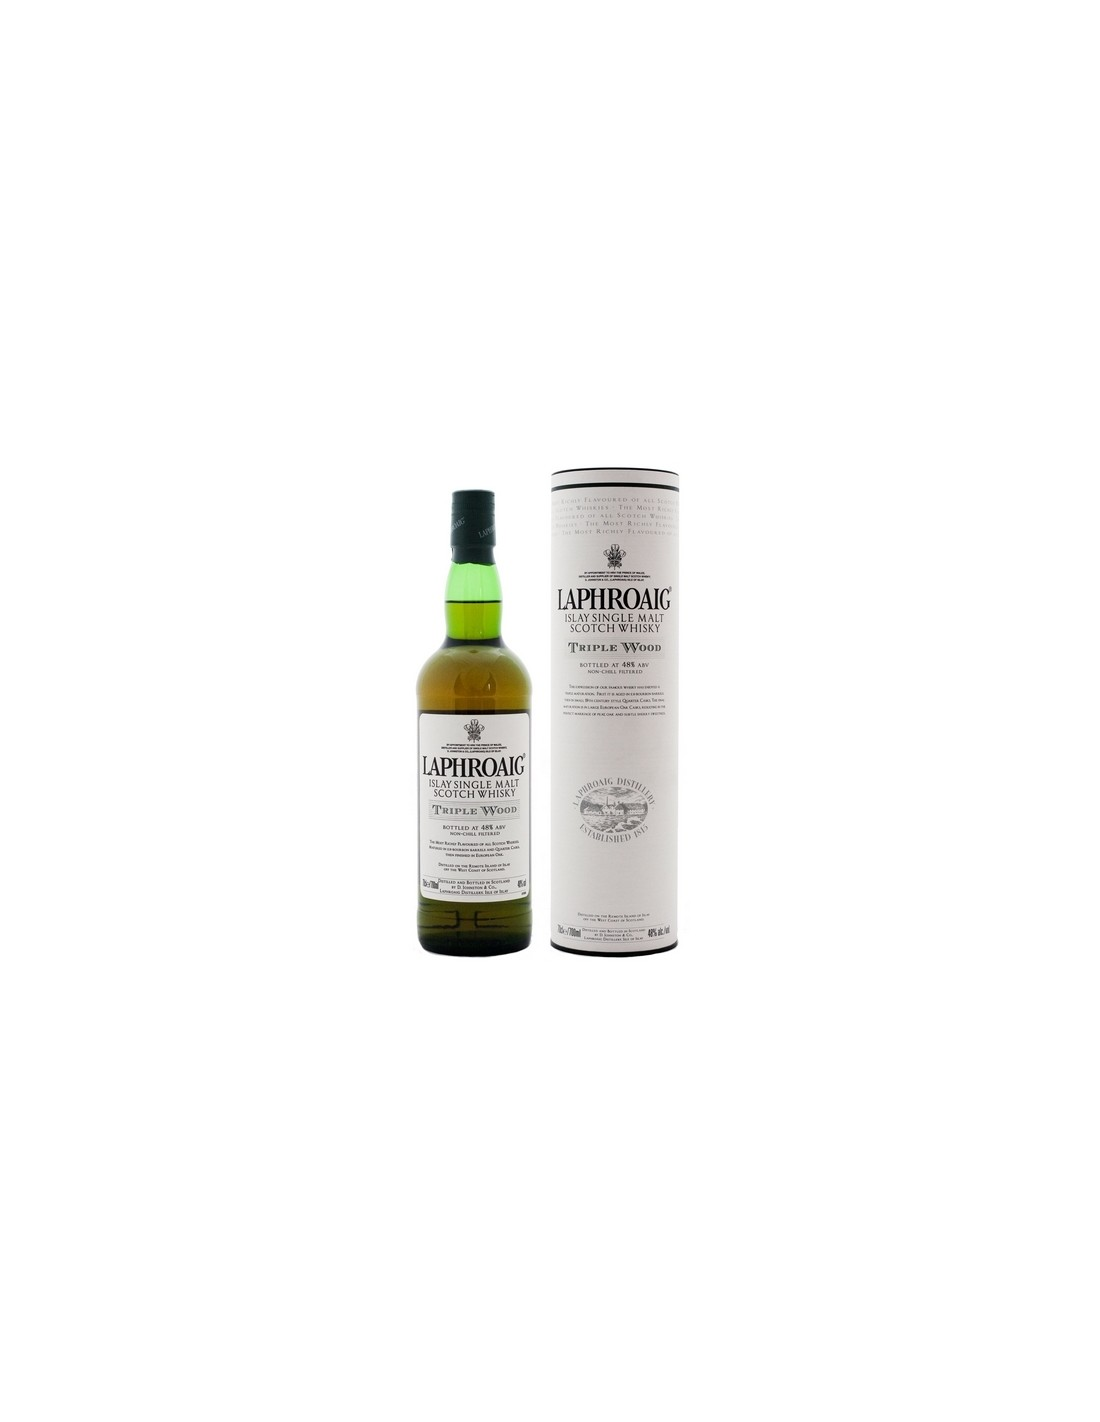 Whisky Laphroaig Triple Wood, 48% alc., 0.7L, Scotia